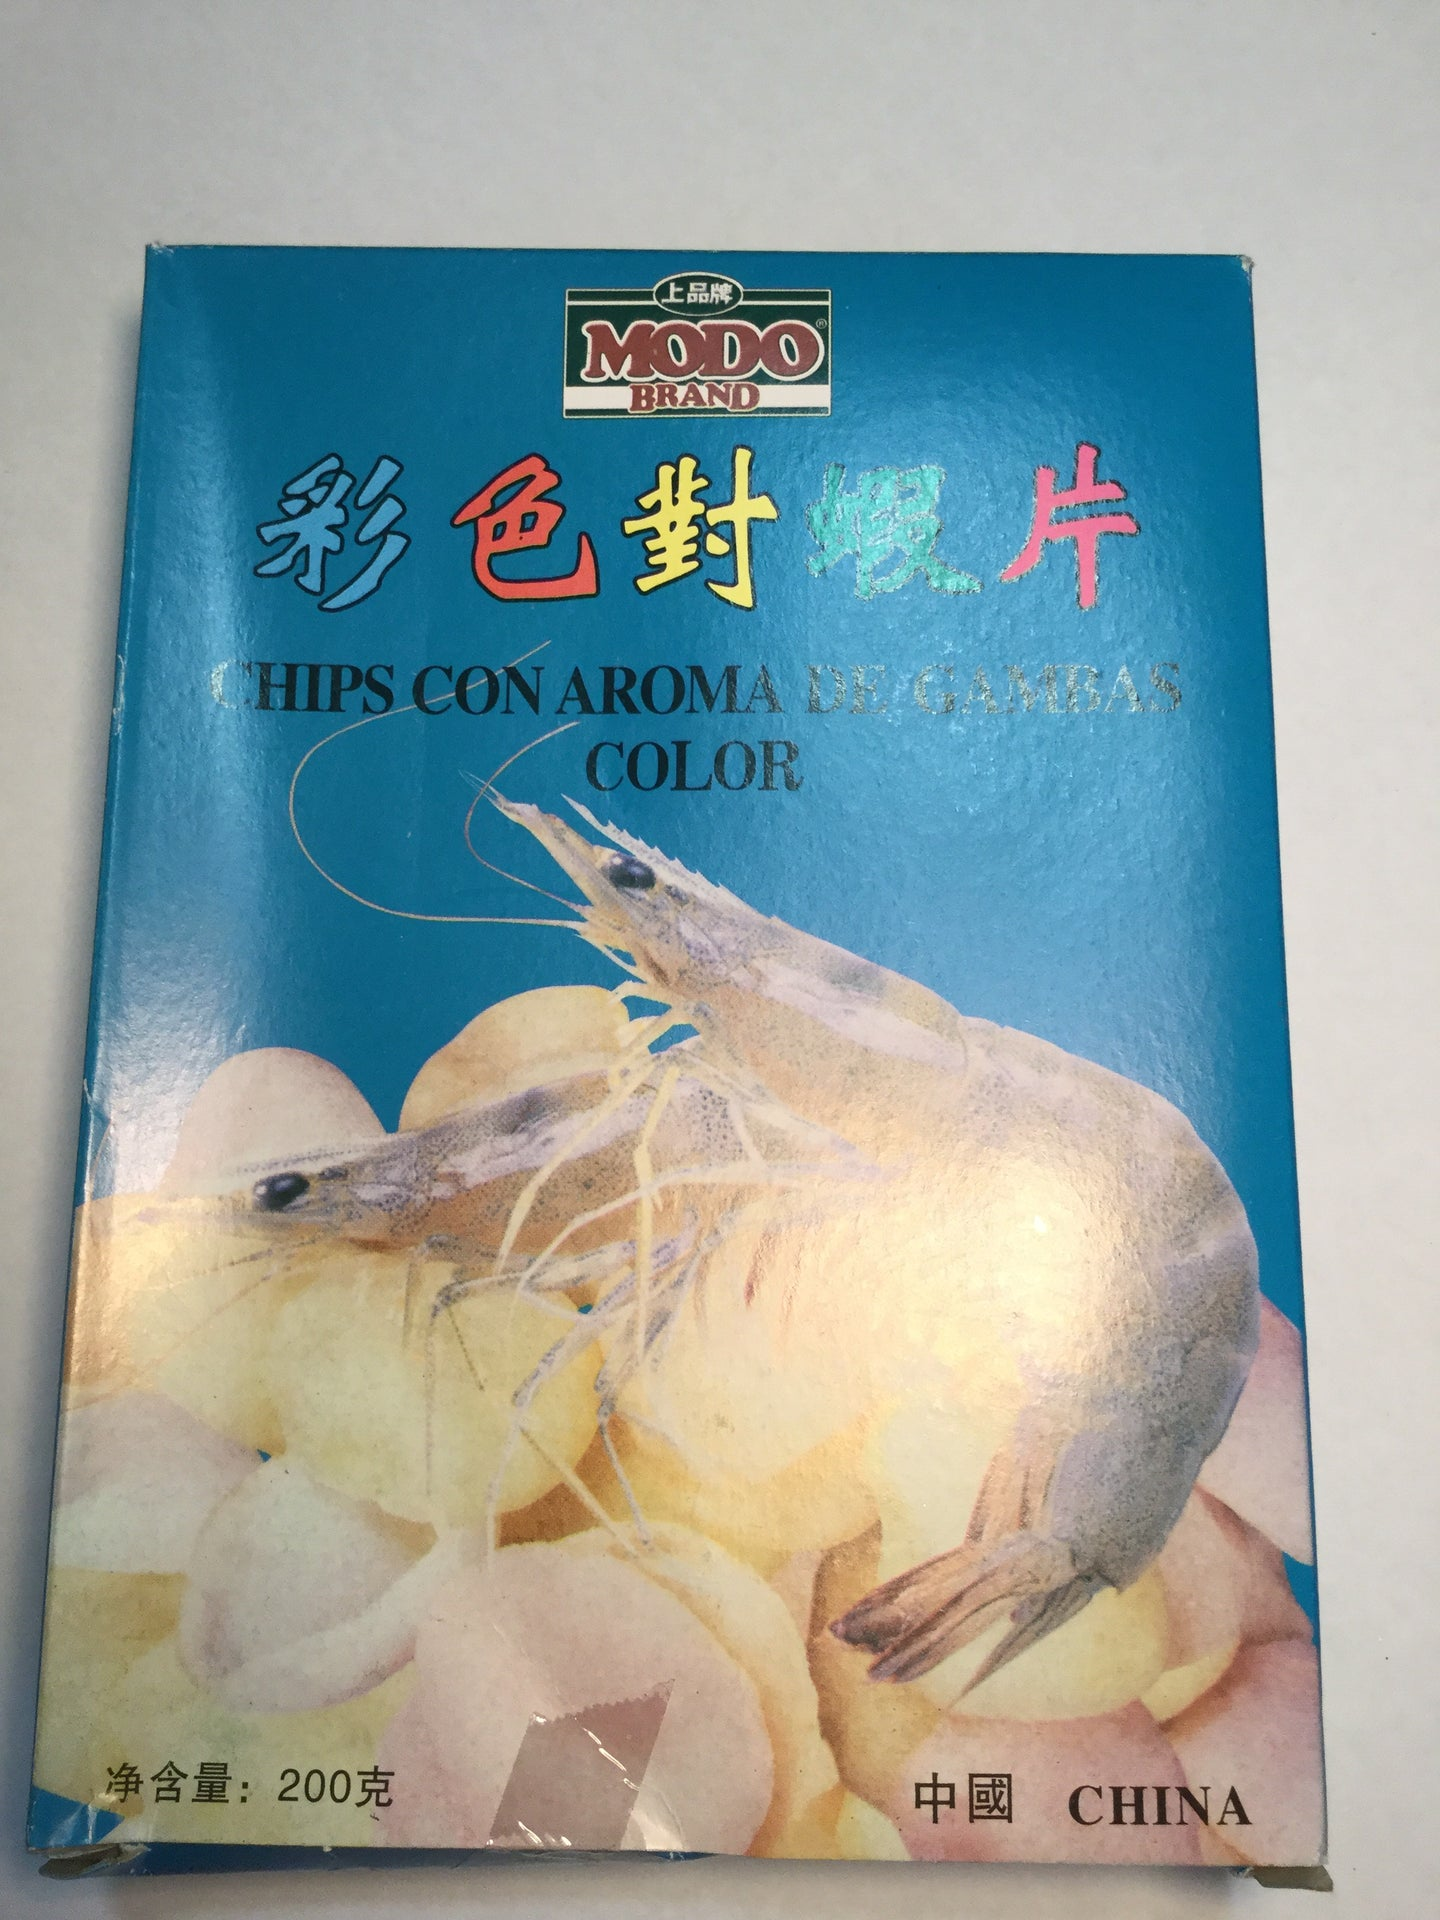 上品牌彩色虾片200g chips de gambas color